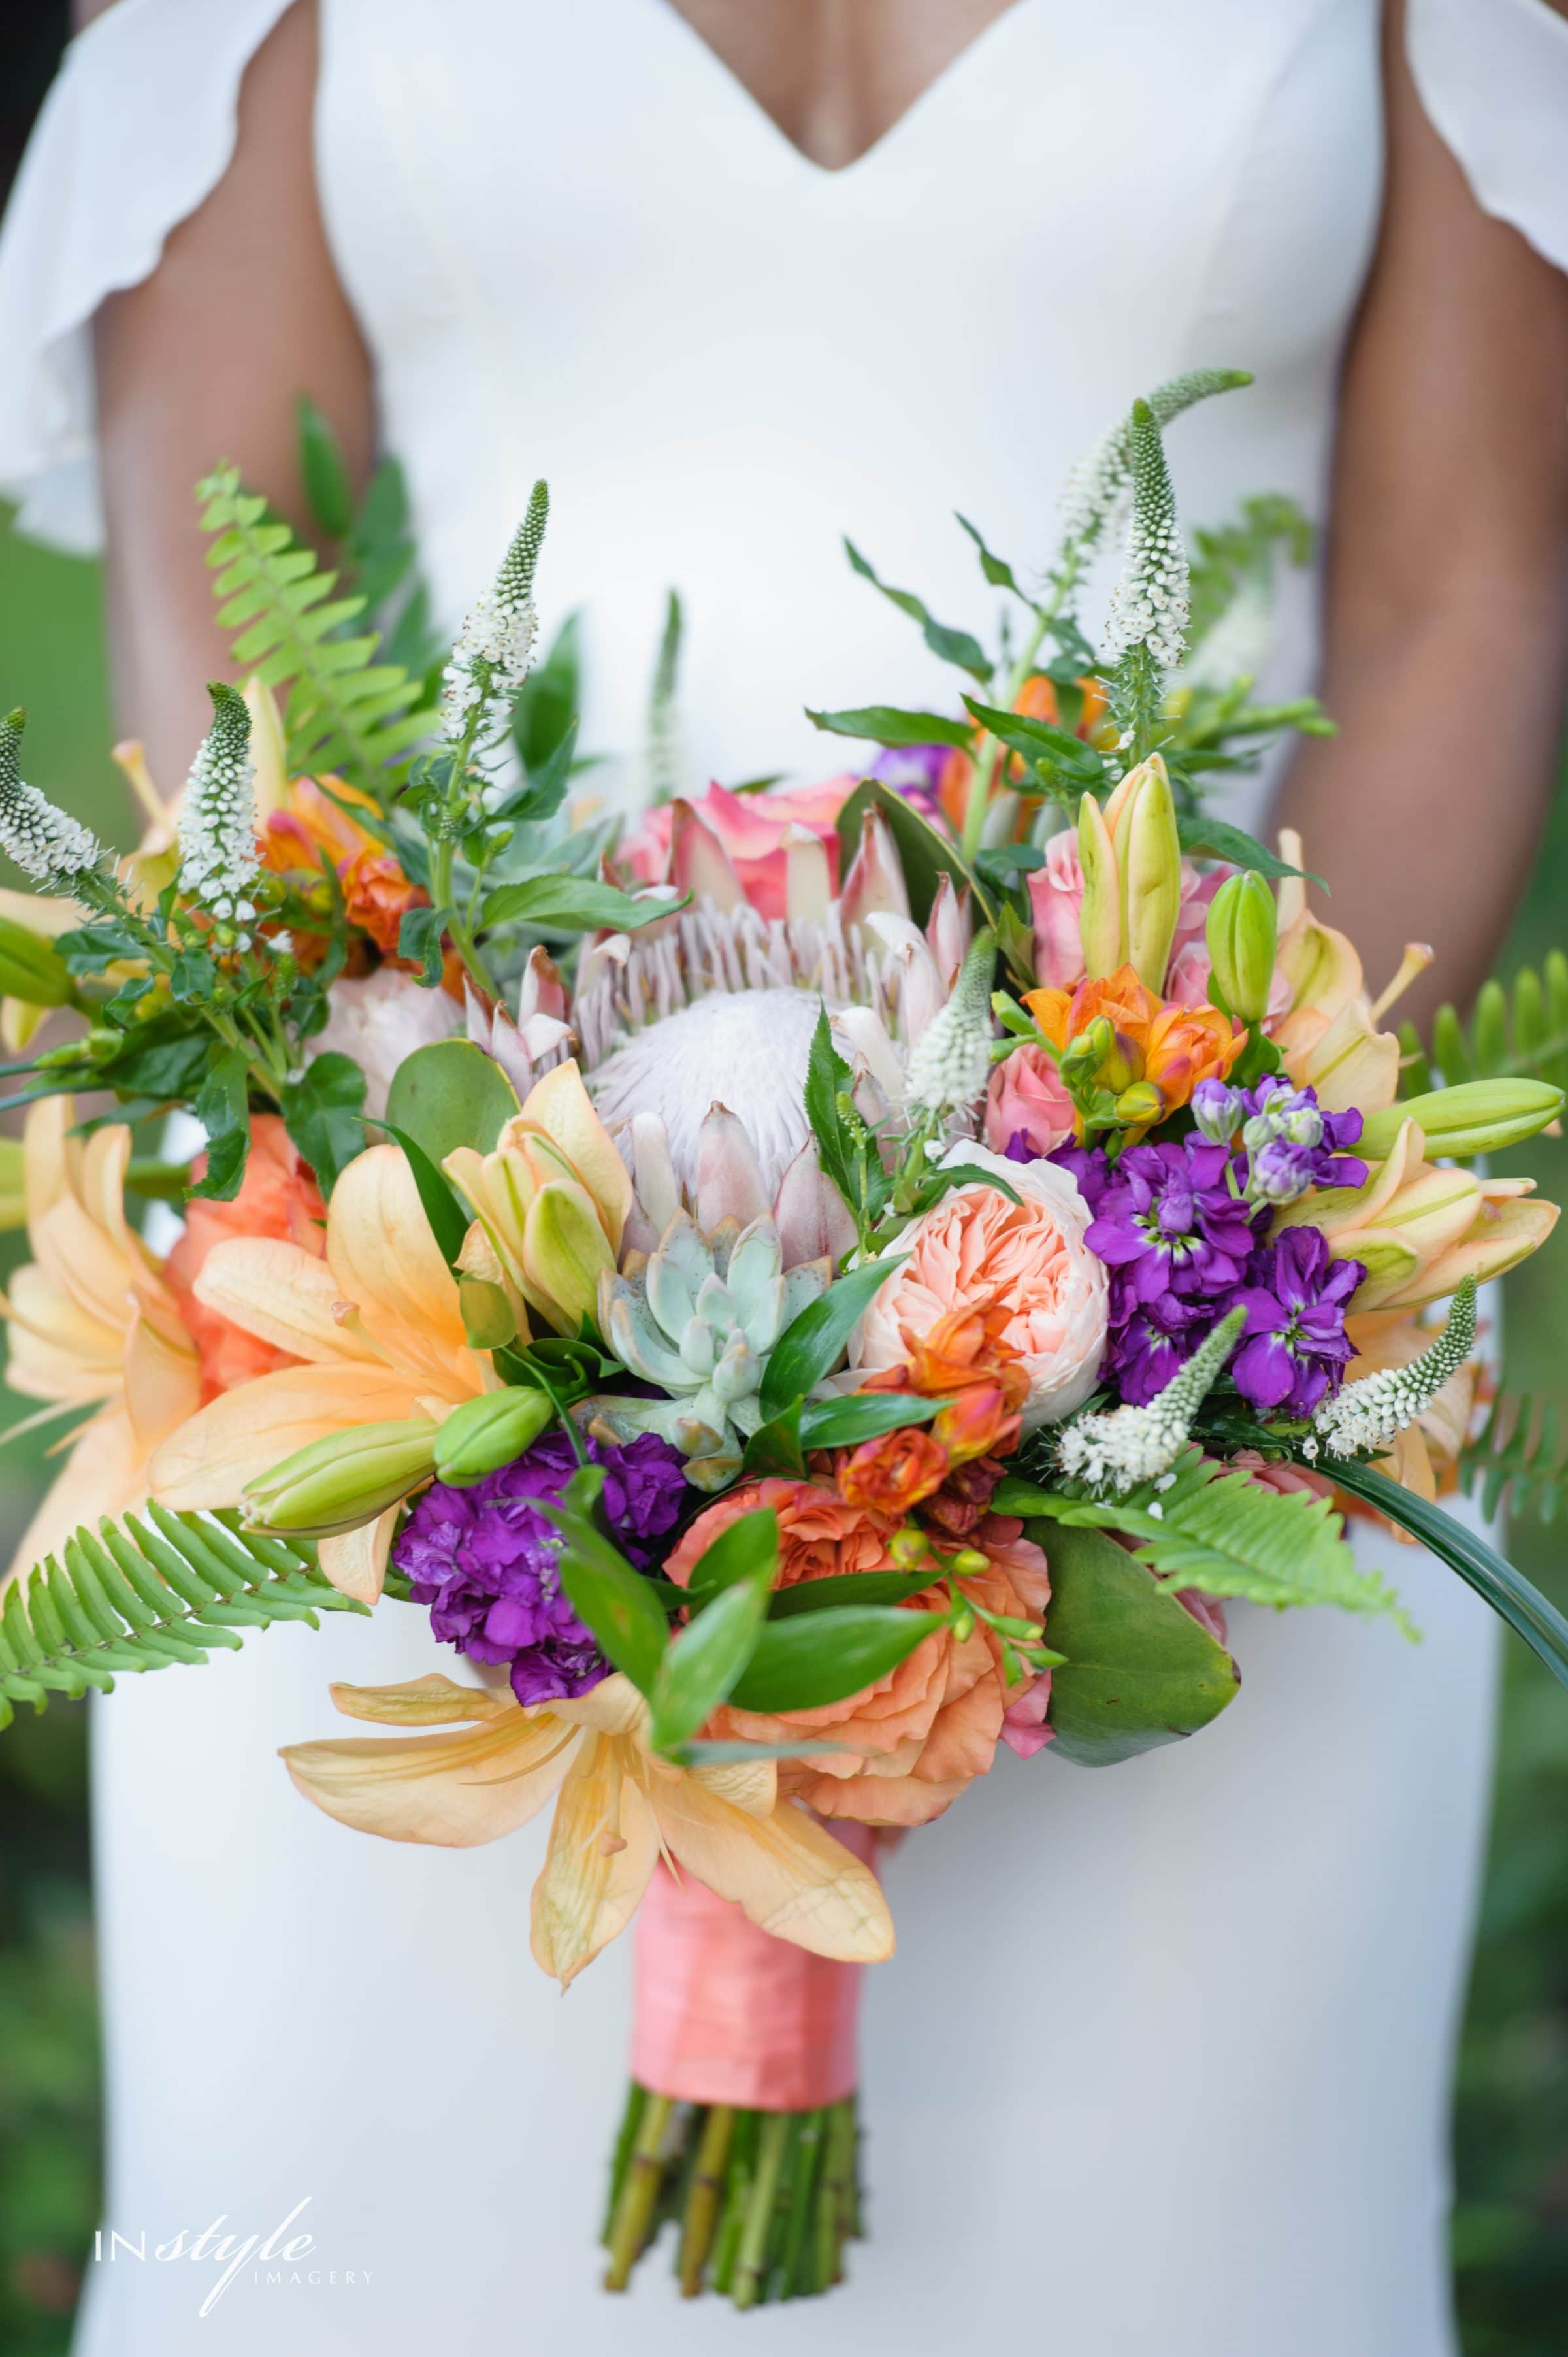 Bride Holding Palm Springs Inspired Wedding Bouquet